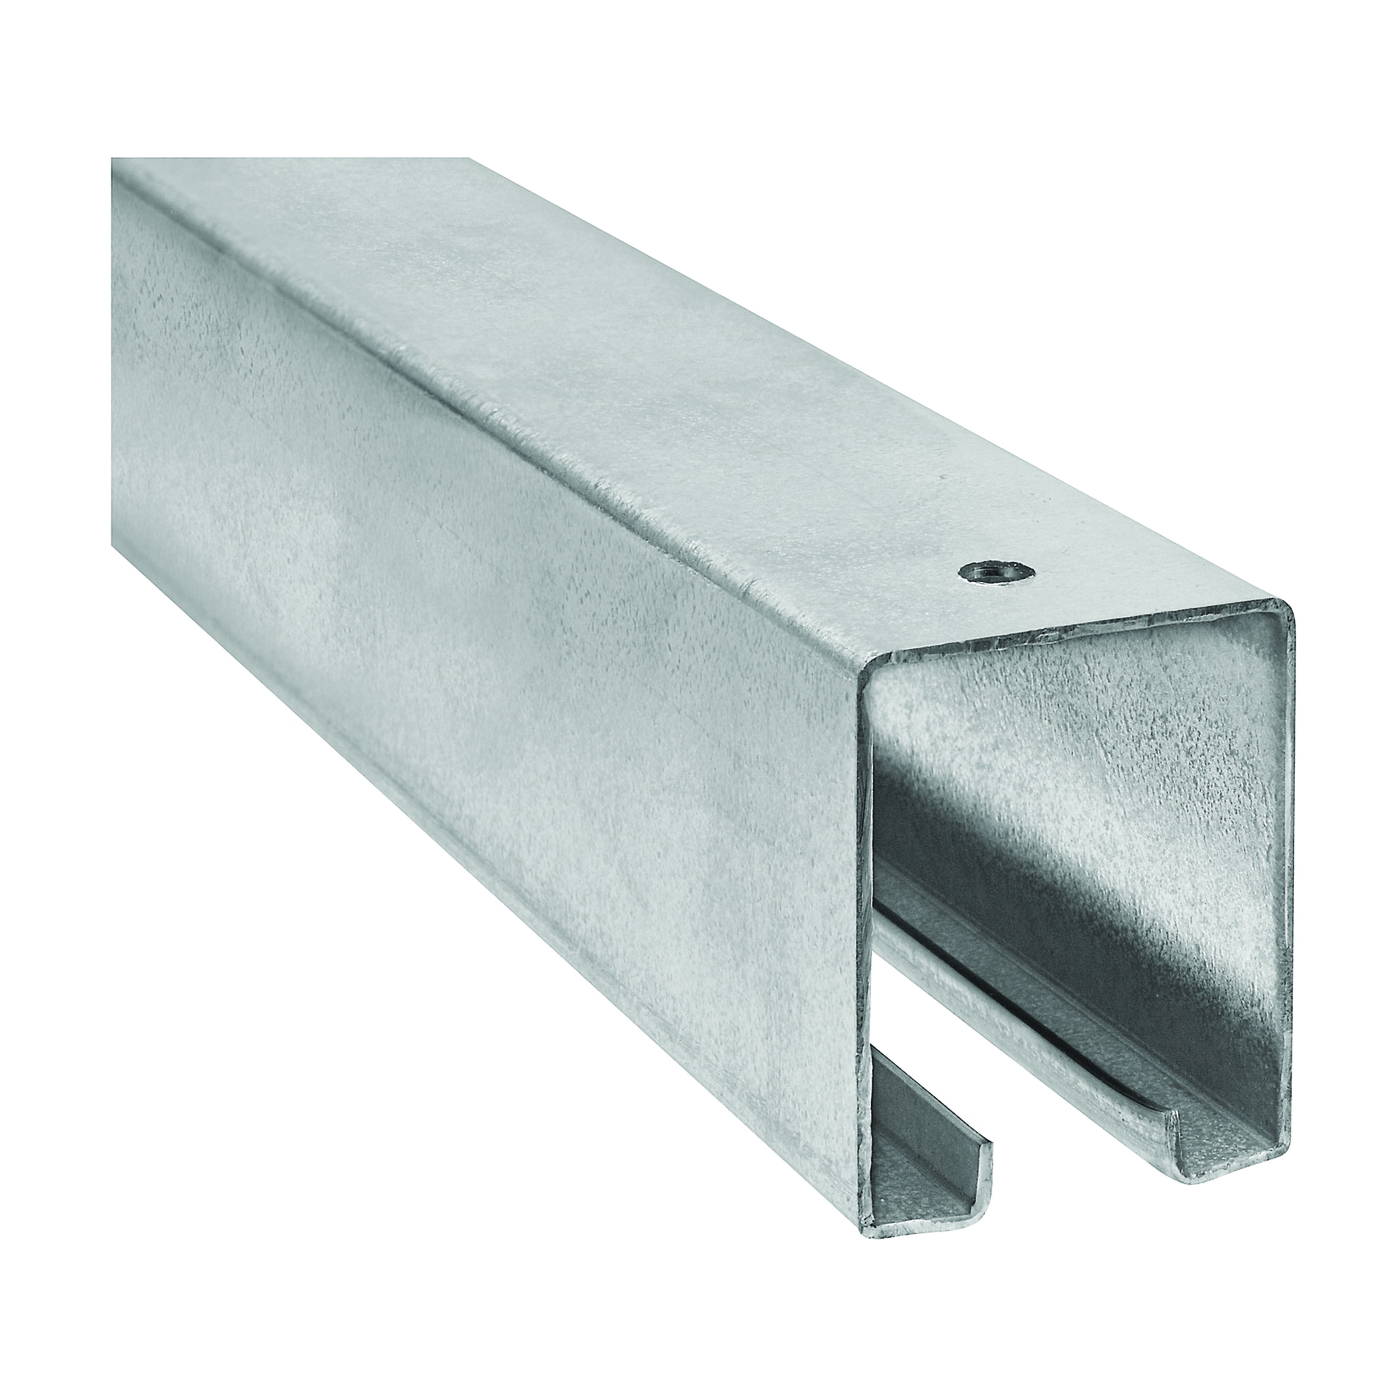 Picture of National Hardware N105-676 Box Rail, Steel, Galvanized, 1-57/64 in W, 2-13/32 in H, 6 ft L